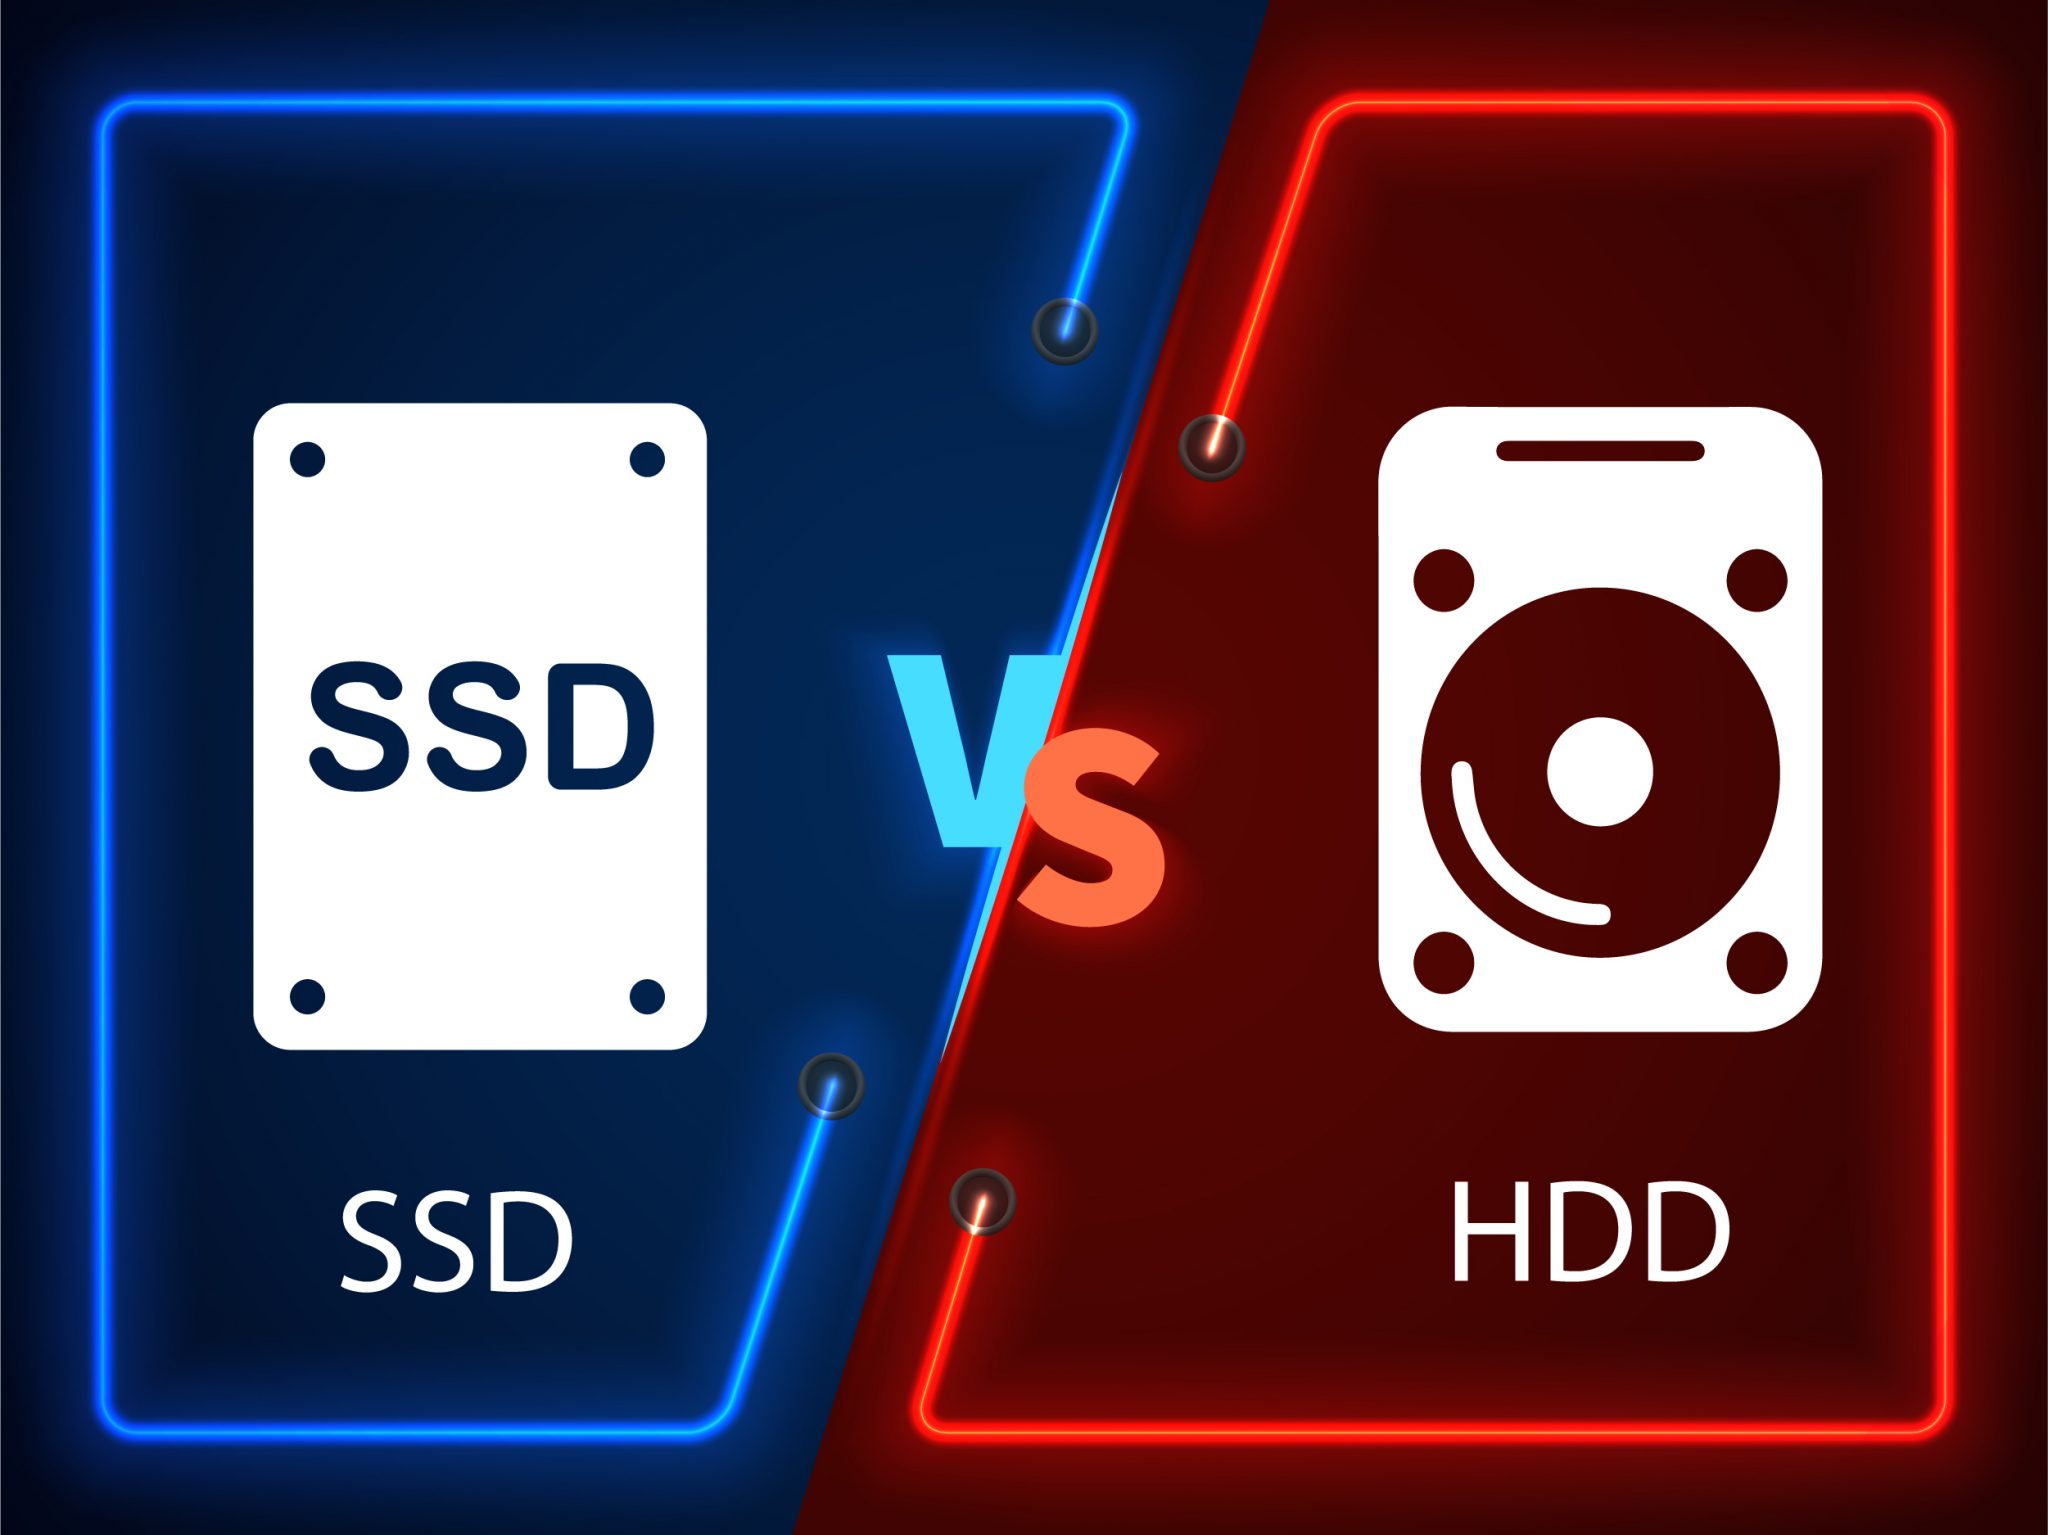 Advantages of SSD over HDD